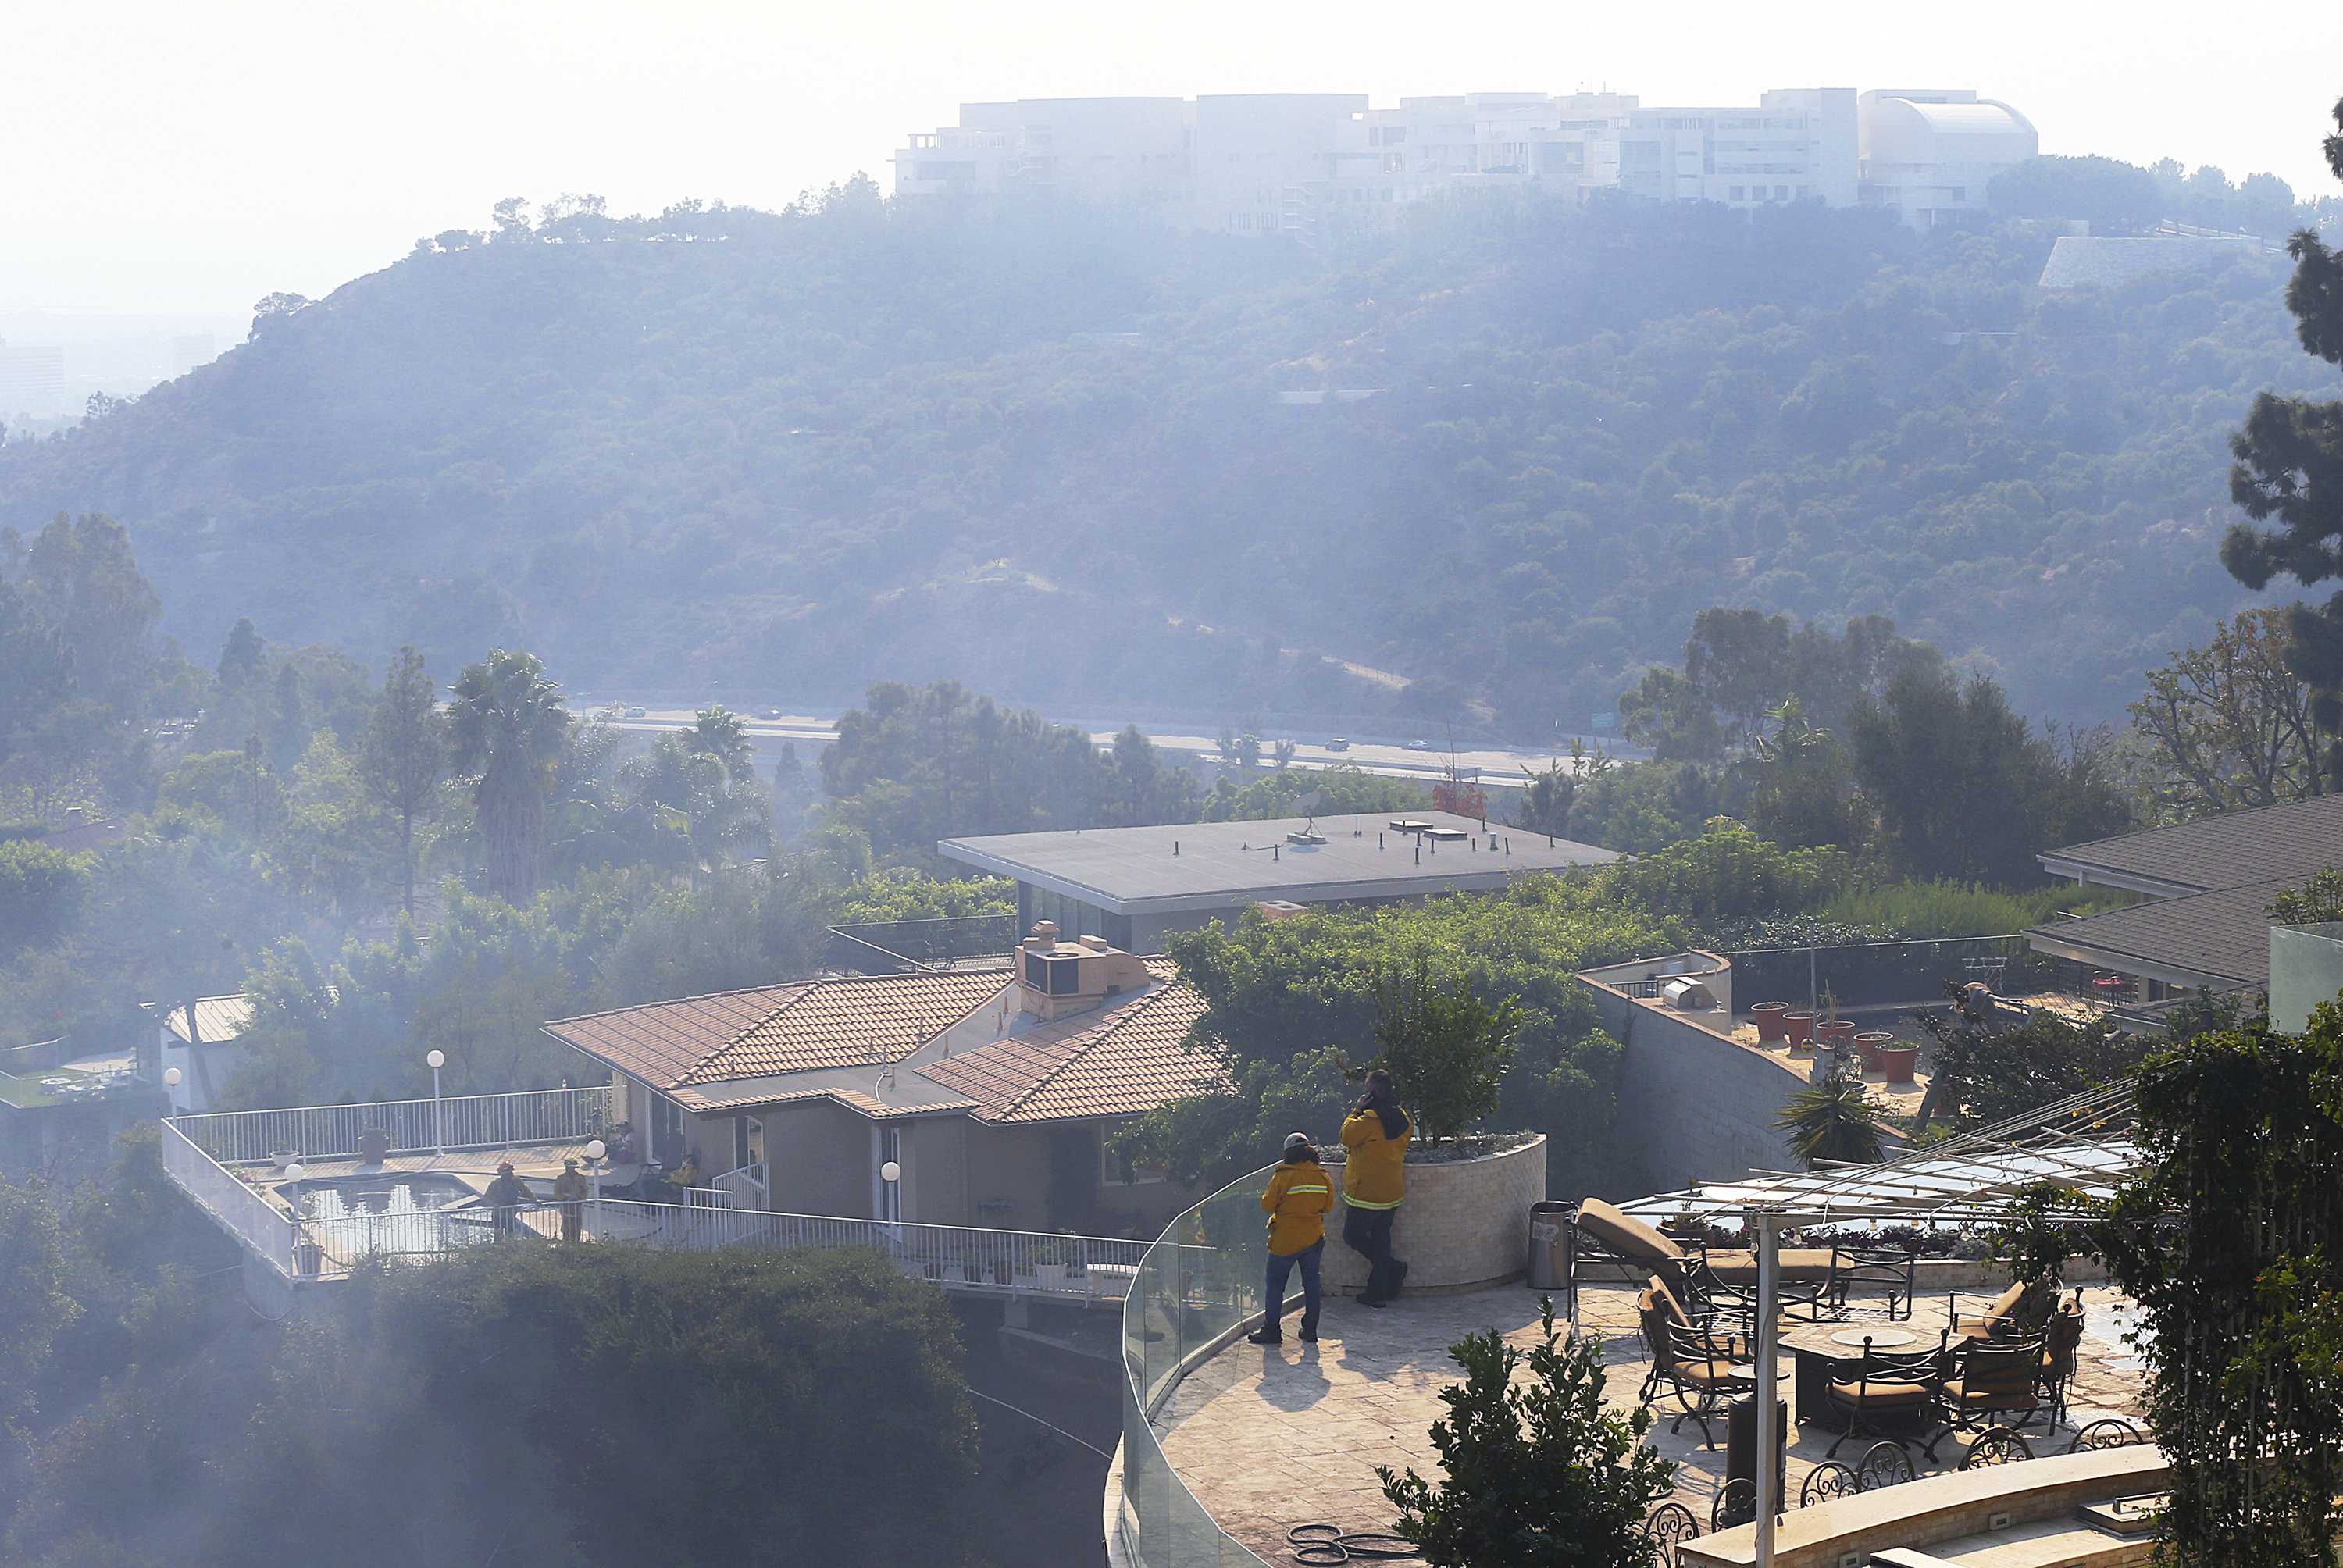 <div class='meta'><div class='origin-logo' data-origin='none'></div><span class='caption-text' data-credit='Reed Saxon/AP Photo'>The Getty Center lies shrouded in smoke as firefighters keep watch on a nearby canyon from the terraces of homes in the Bel Air district on Wednesday, Dec. 6, 2017.</span></div>